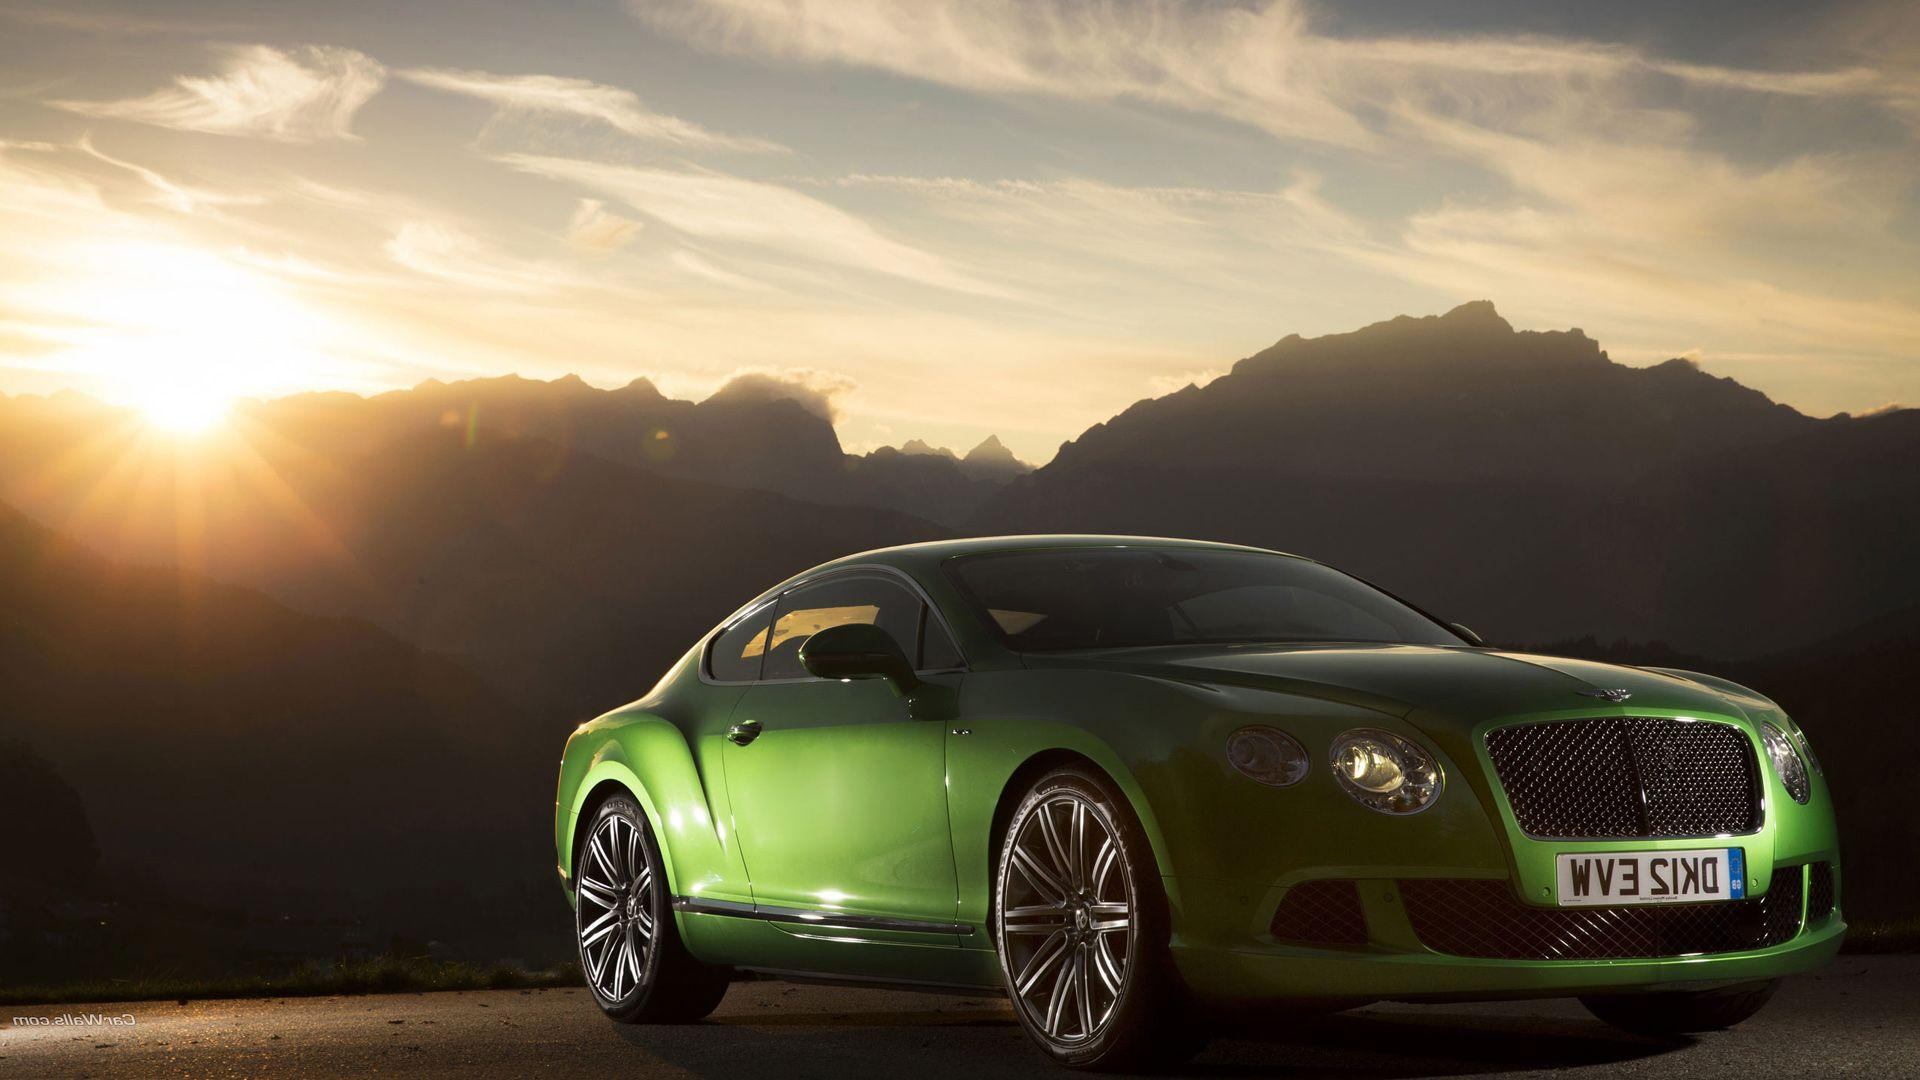 2013 Bentley Continental GT Speed 2 Wallpaper | HD Car Wallpapers